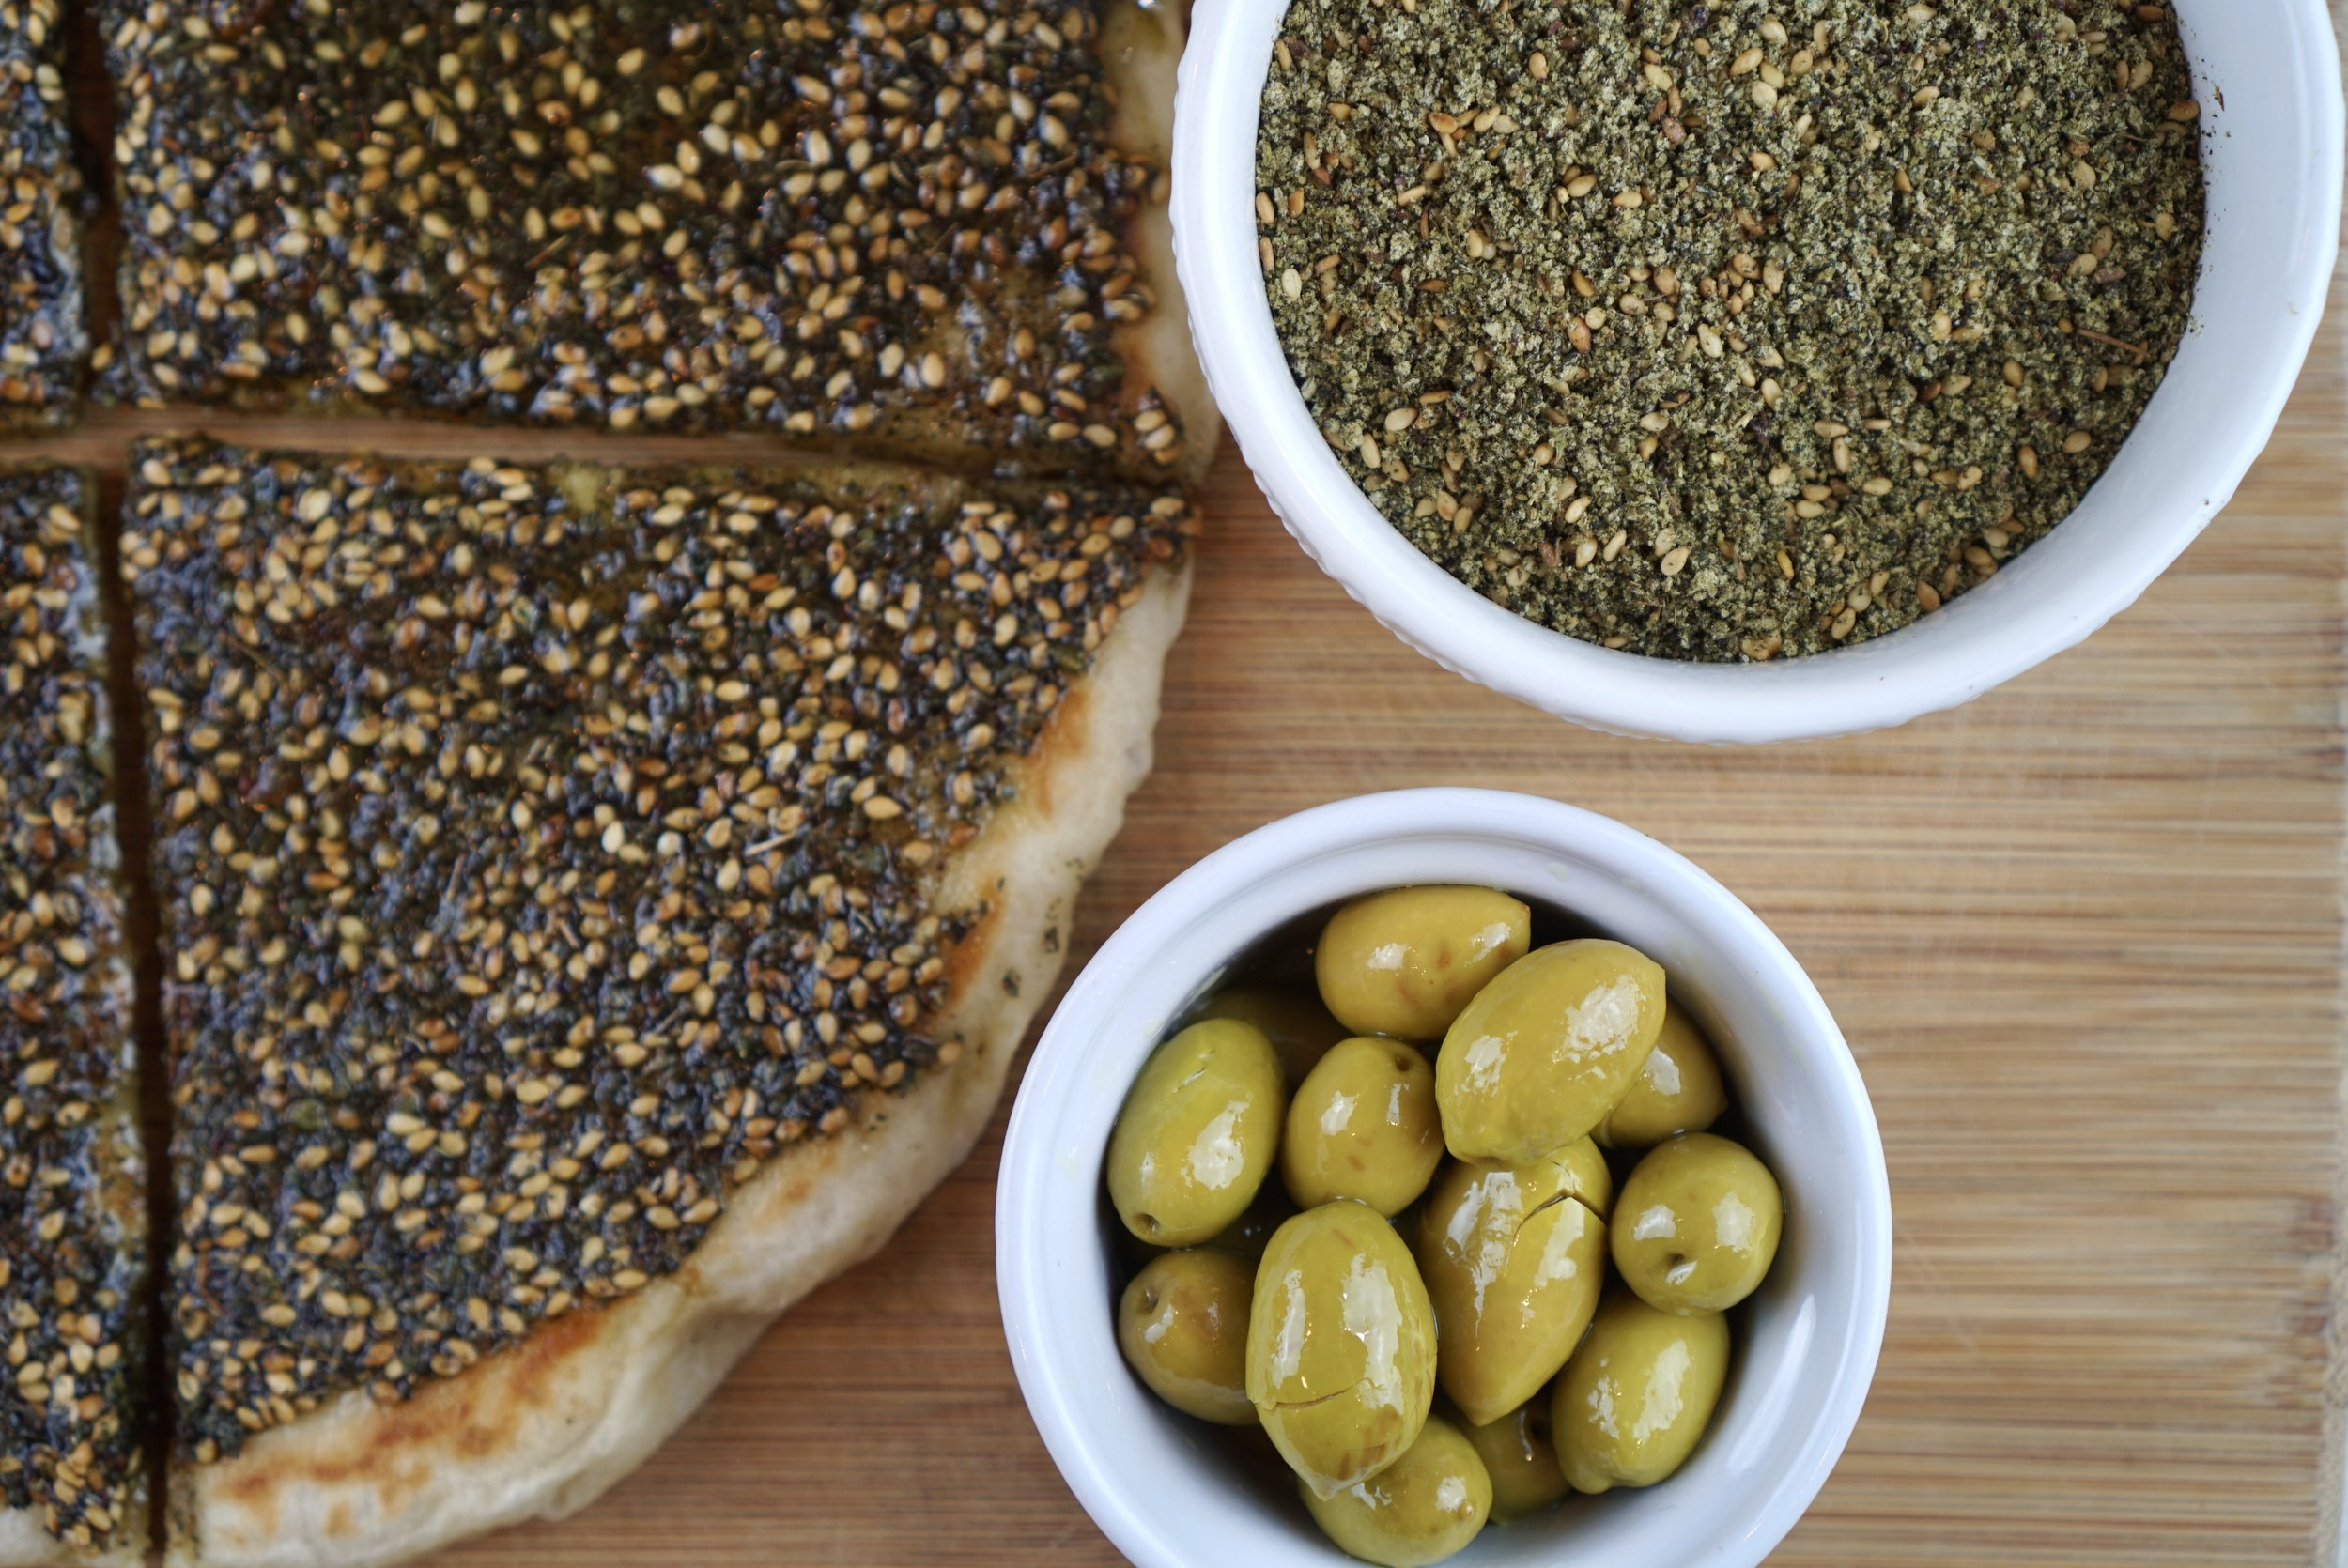 Mana'eesh: Middle Eastern flatbreads topped with za'atar mixed with olive oil and fresh local farm veggies